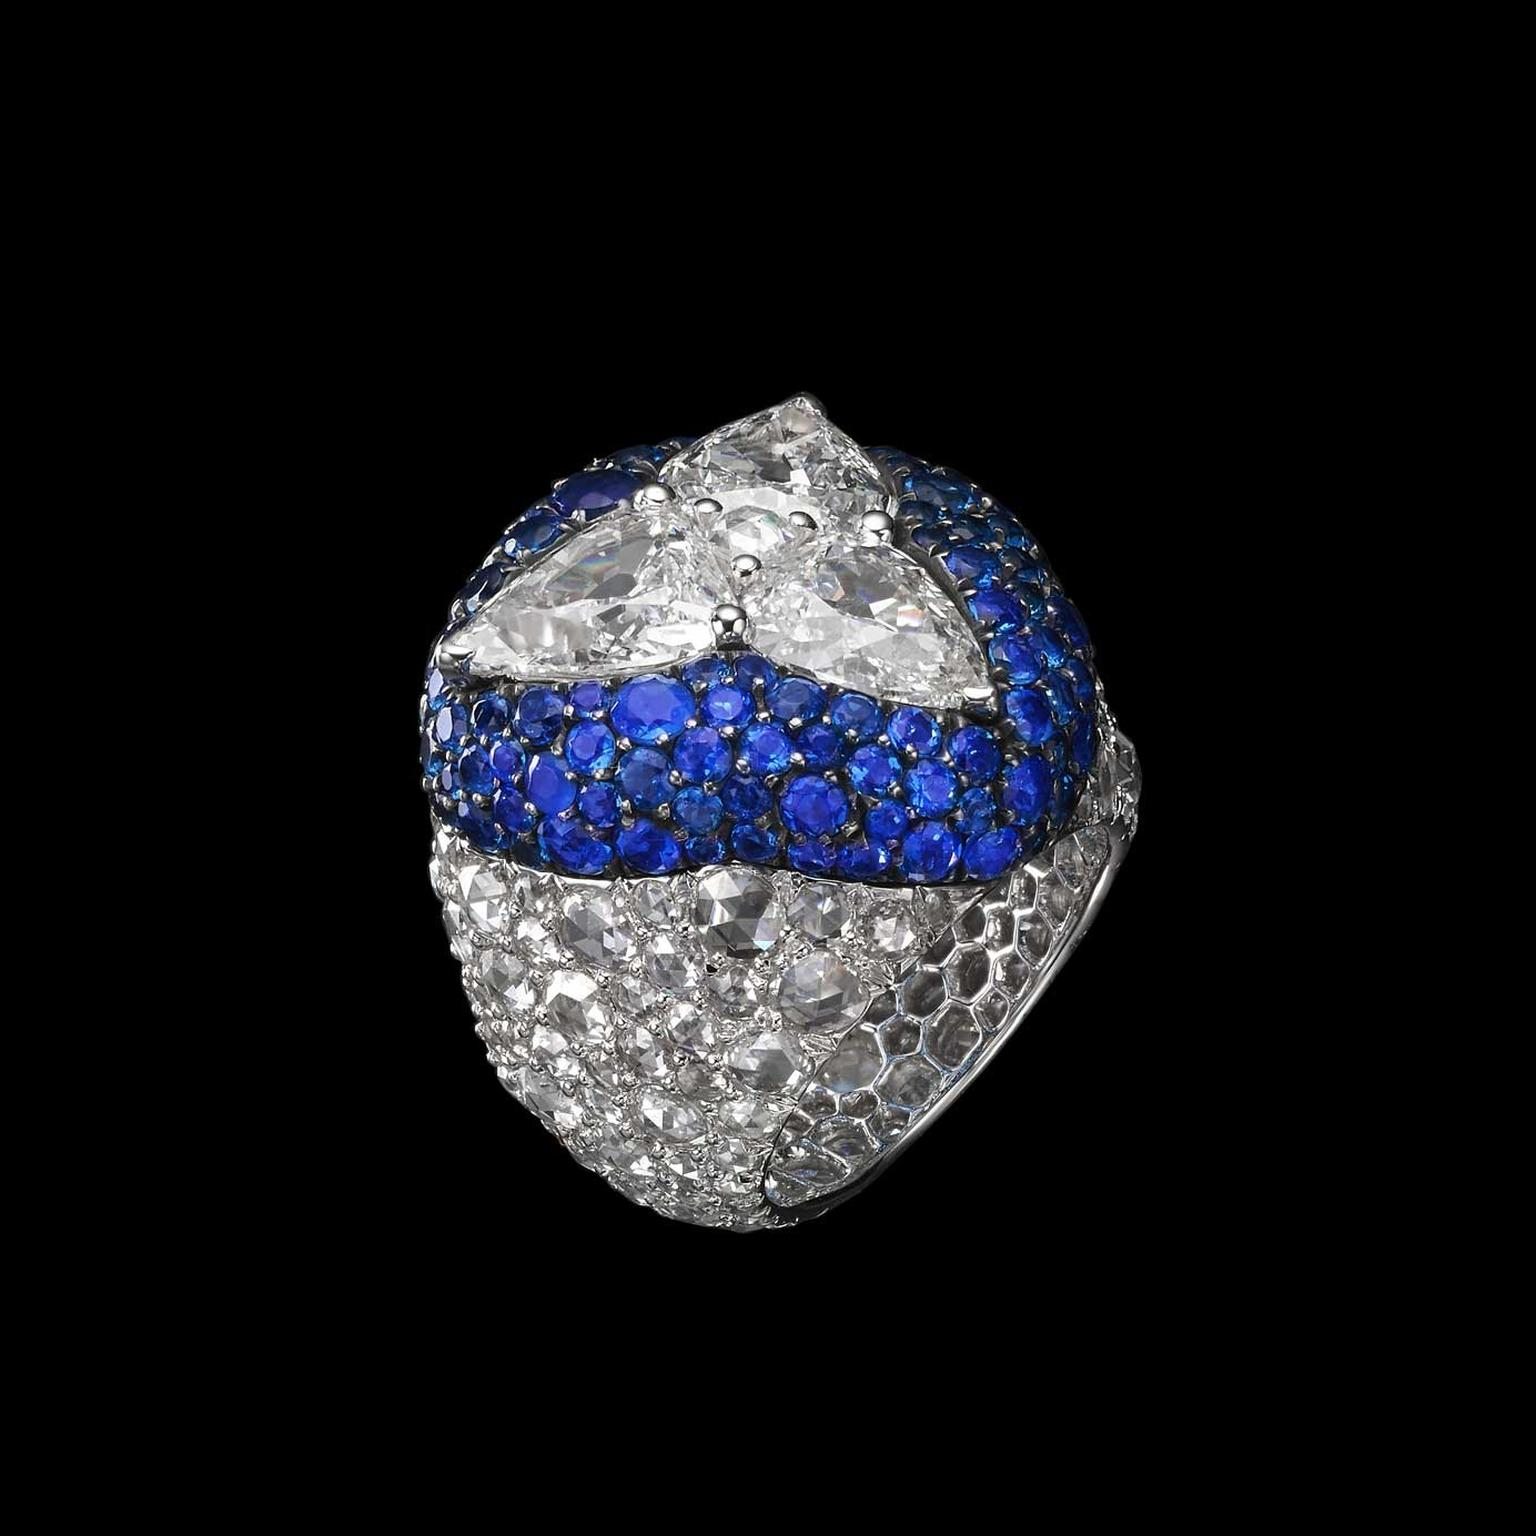 Carnet Diamond and Huaynite ring